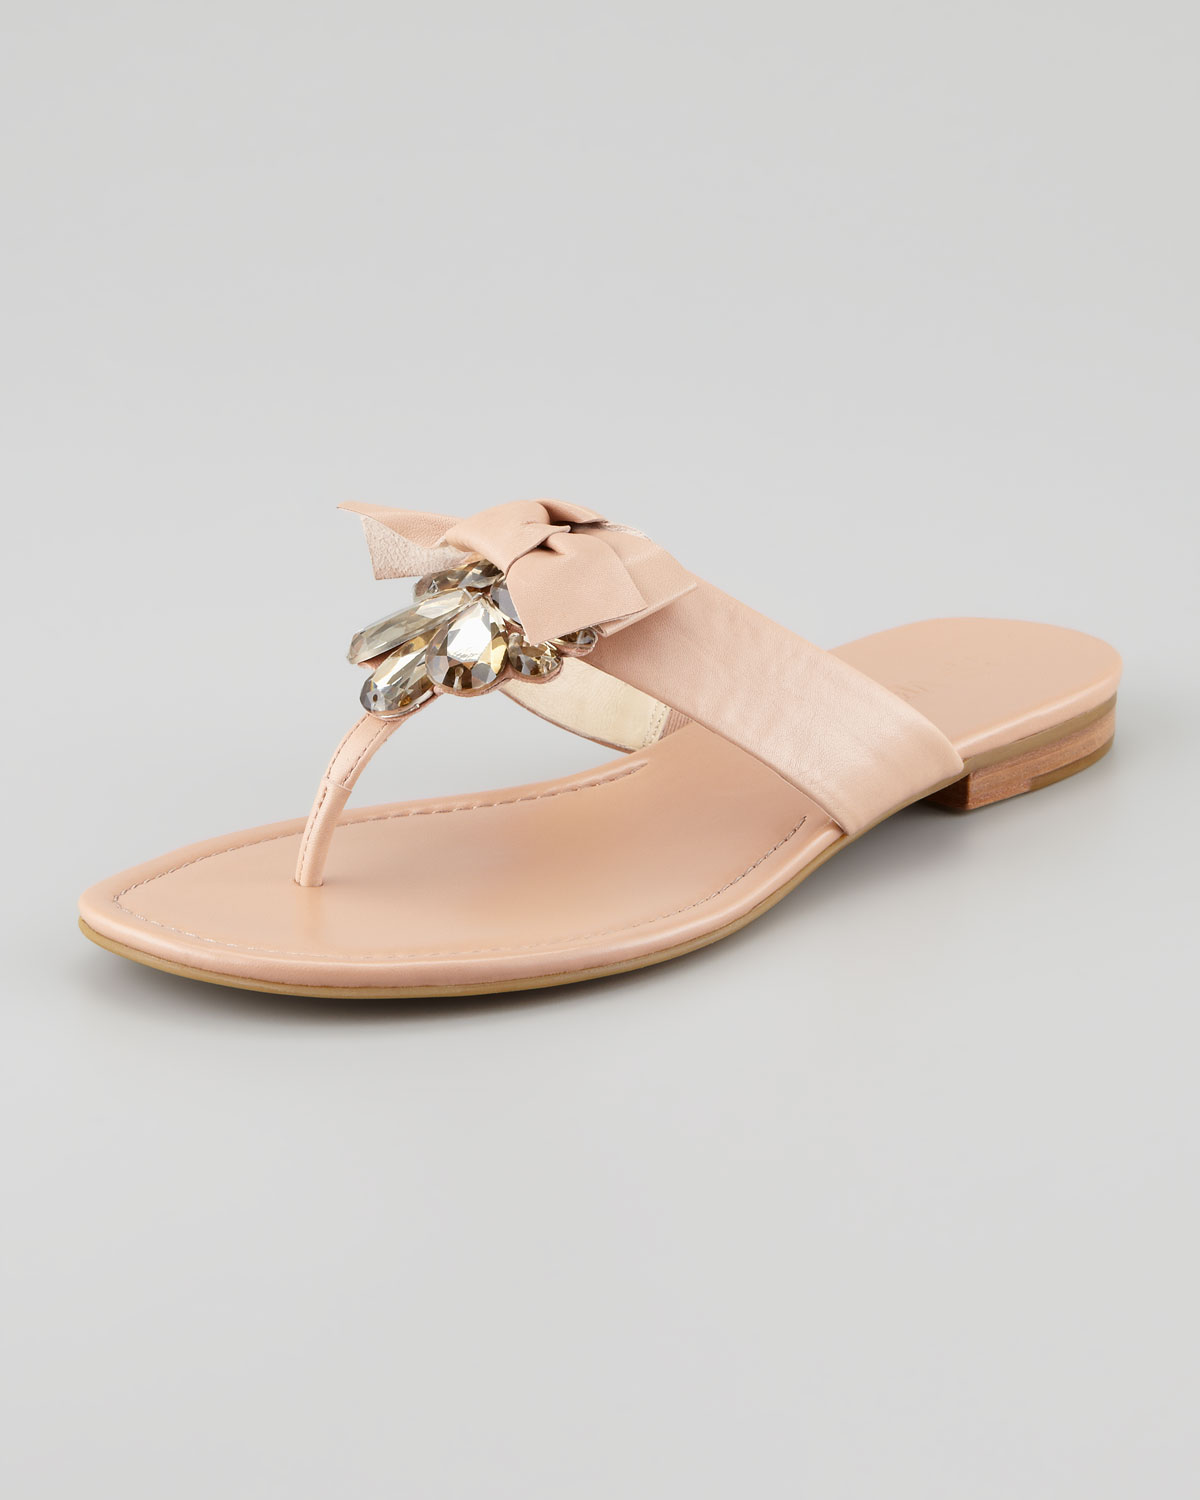 5560d7c13d50 Lyst - Vera Wang Lavender Jeweled Bow Thong Sandal Latte in Natural